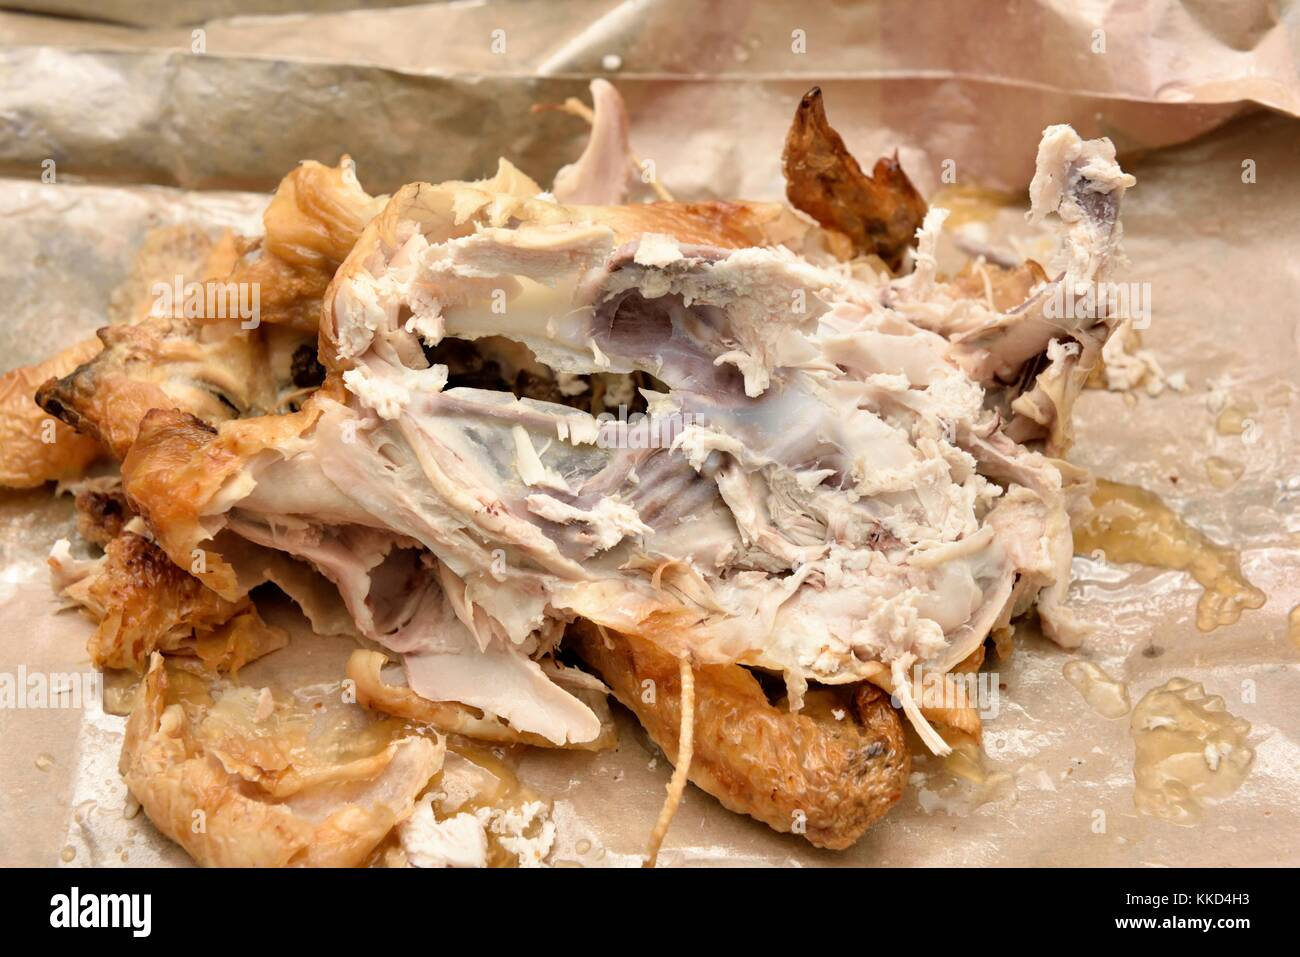 Roast chicken carcass remains - Stock Image